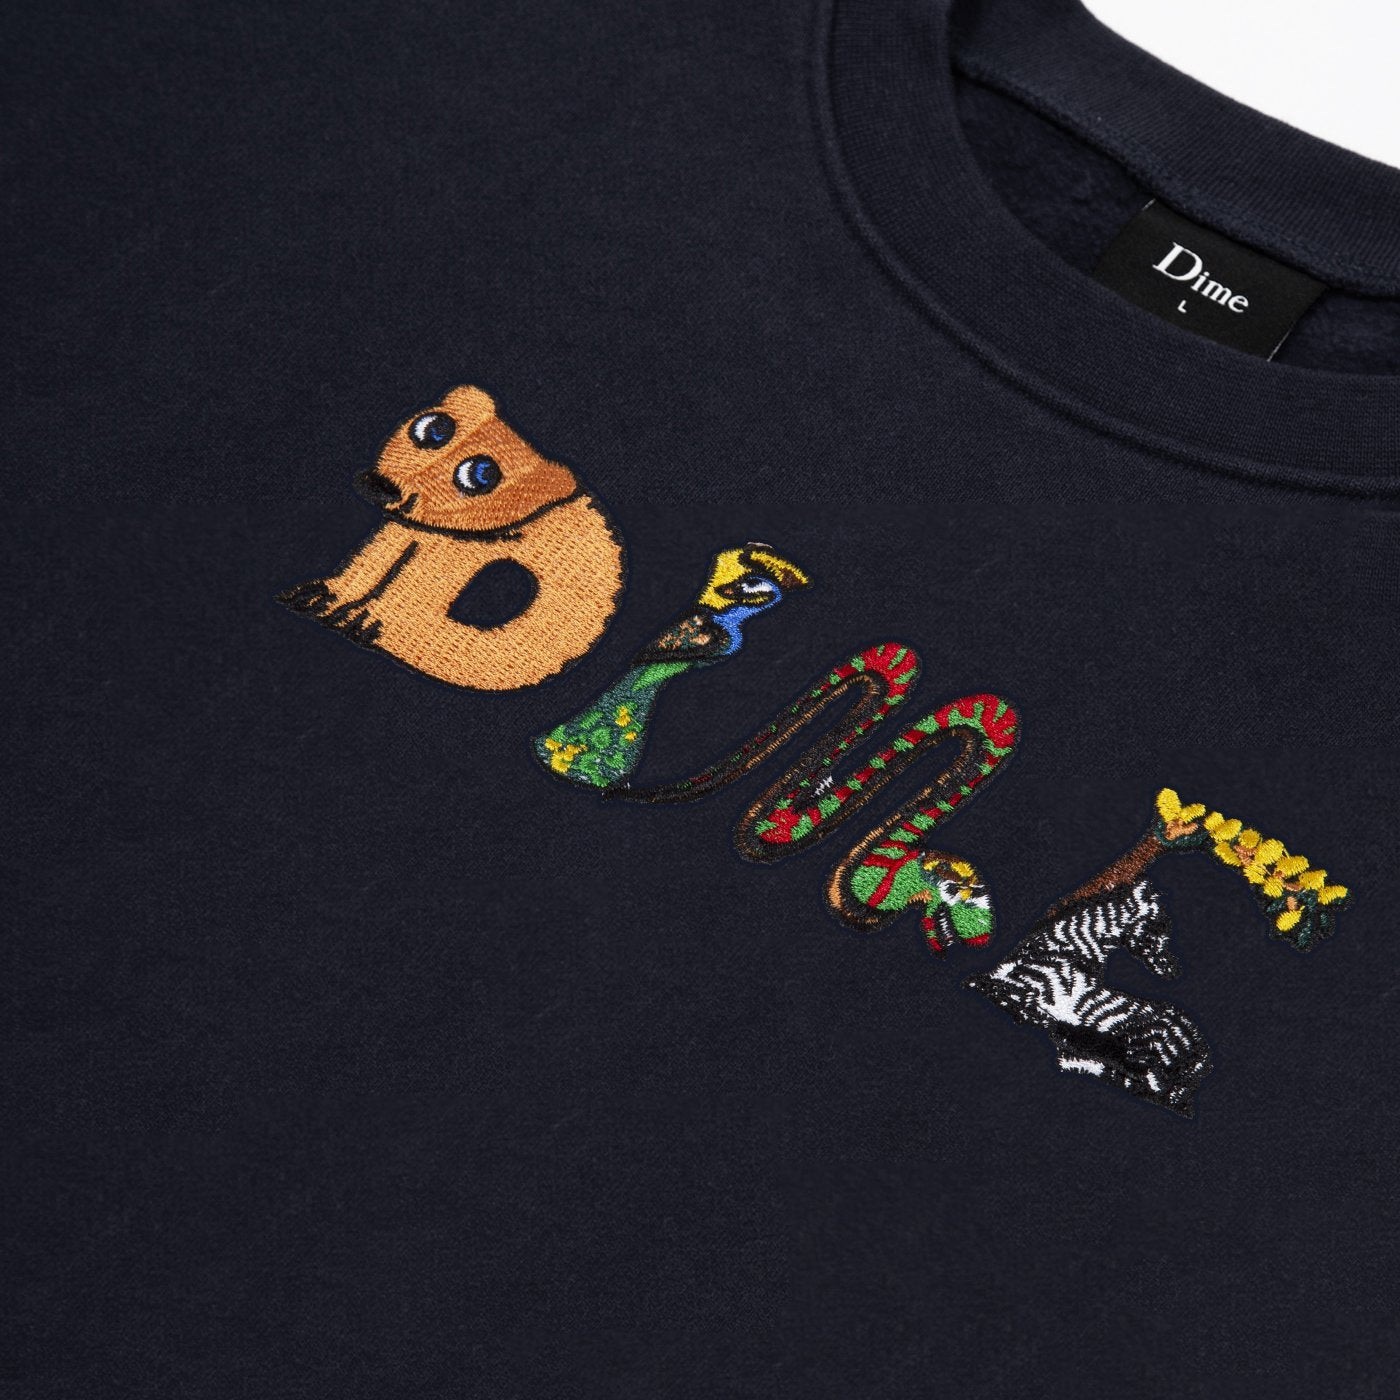 Dime Zoo Embroidered Crewneck Product Photo #2